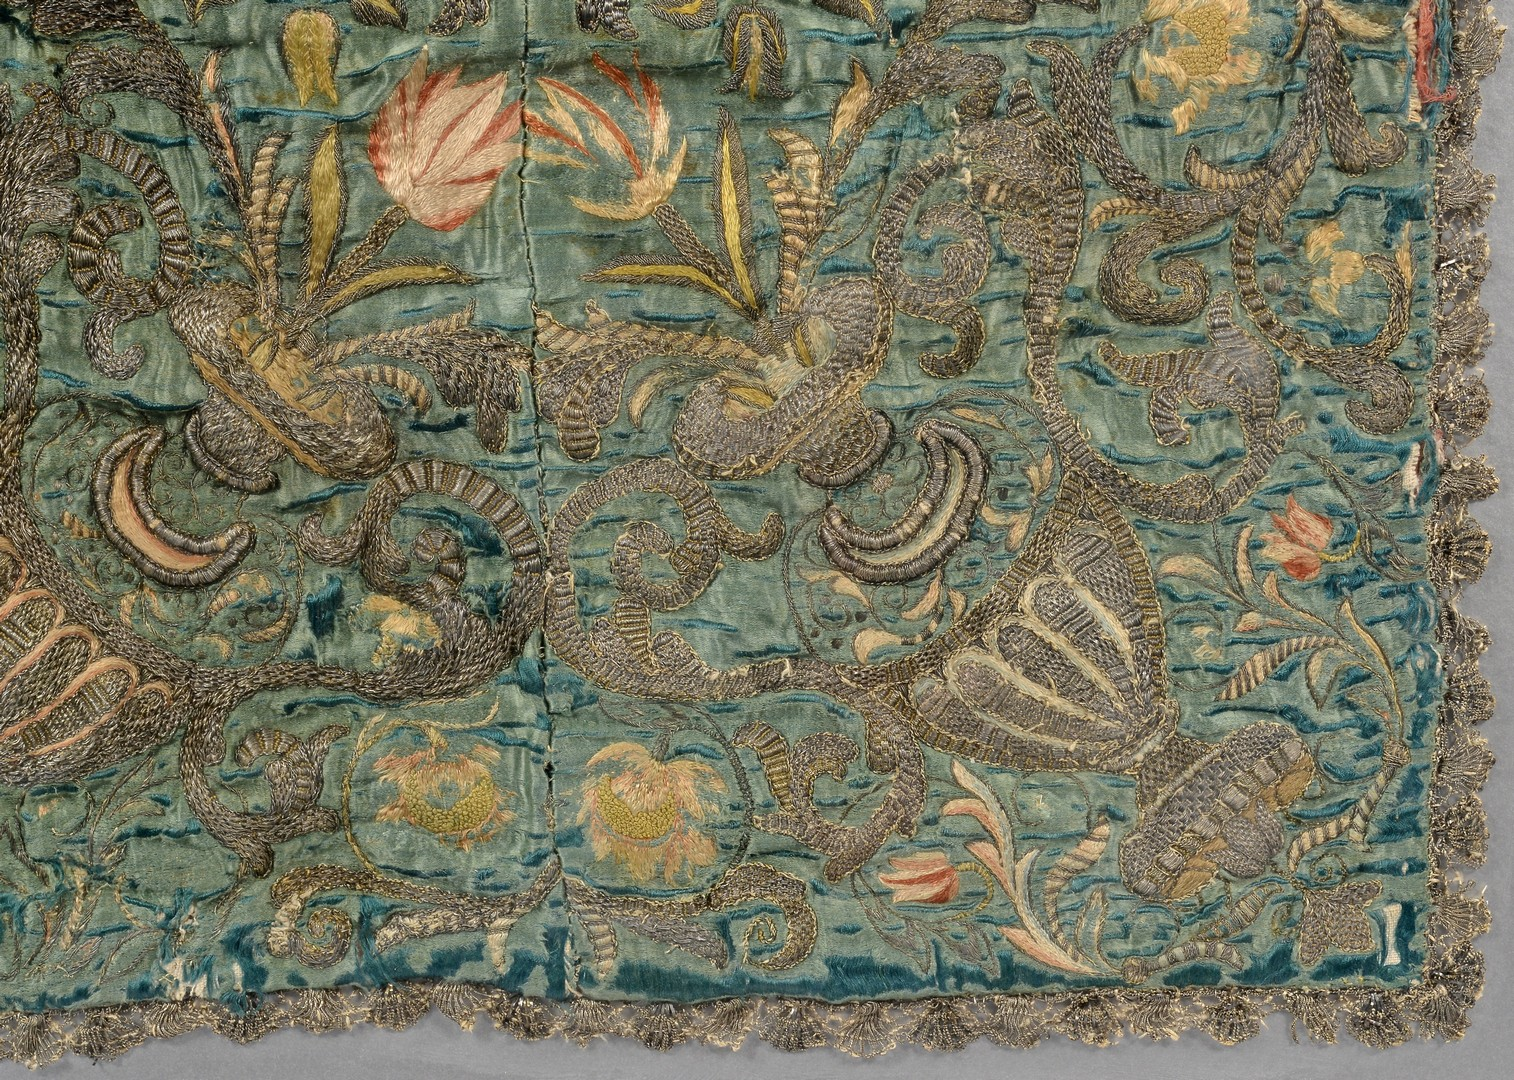 Lot 261: 2 Framed Italian Embroidered Textiles